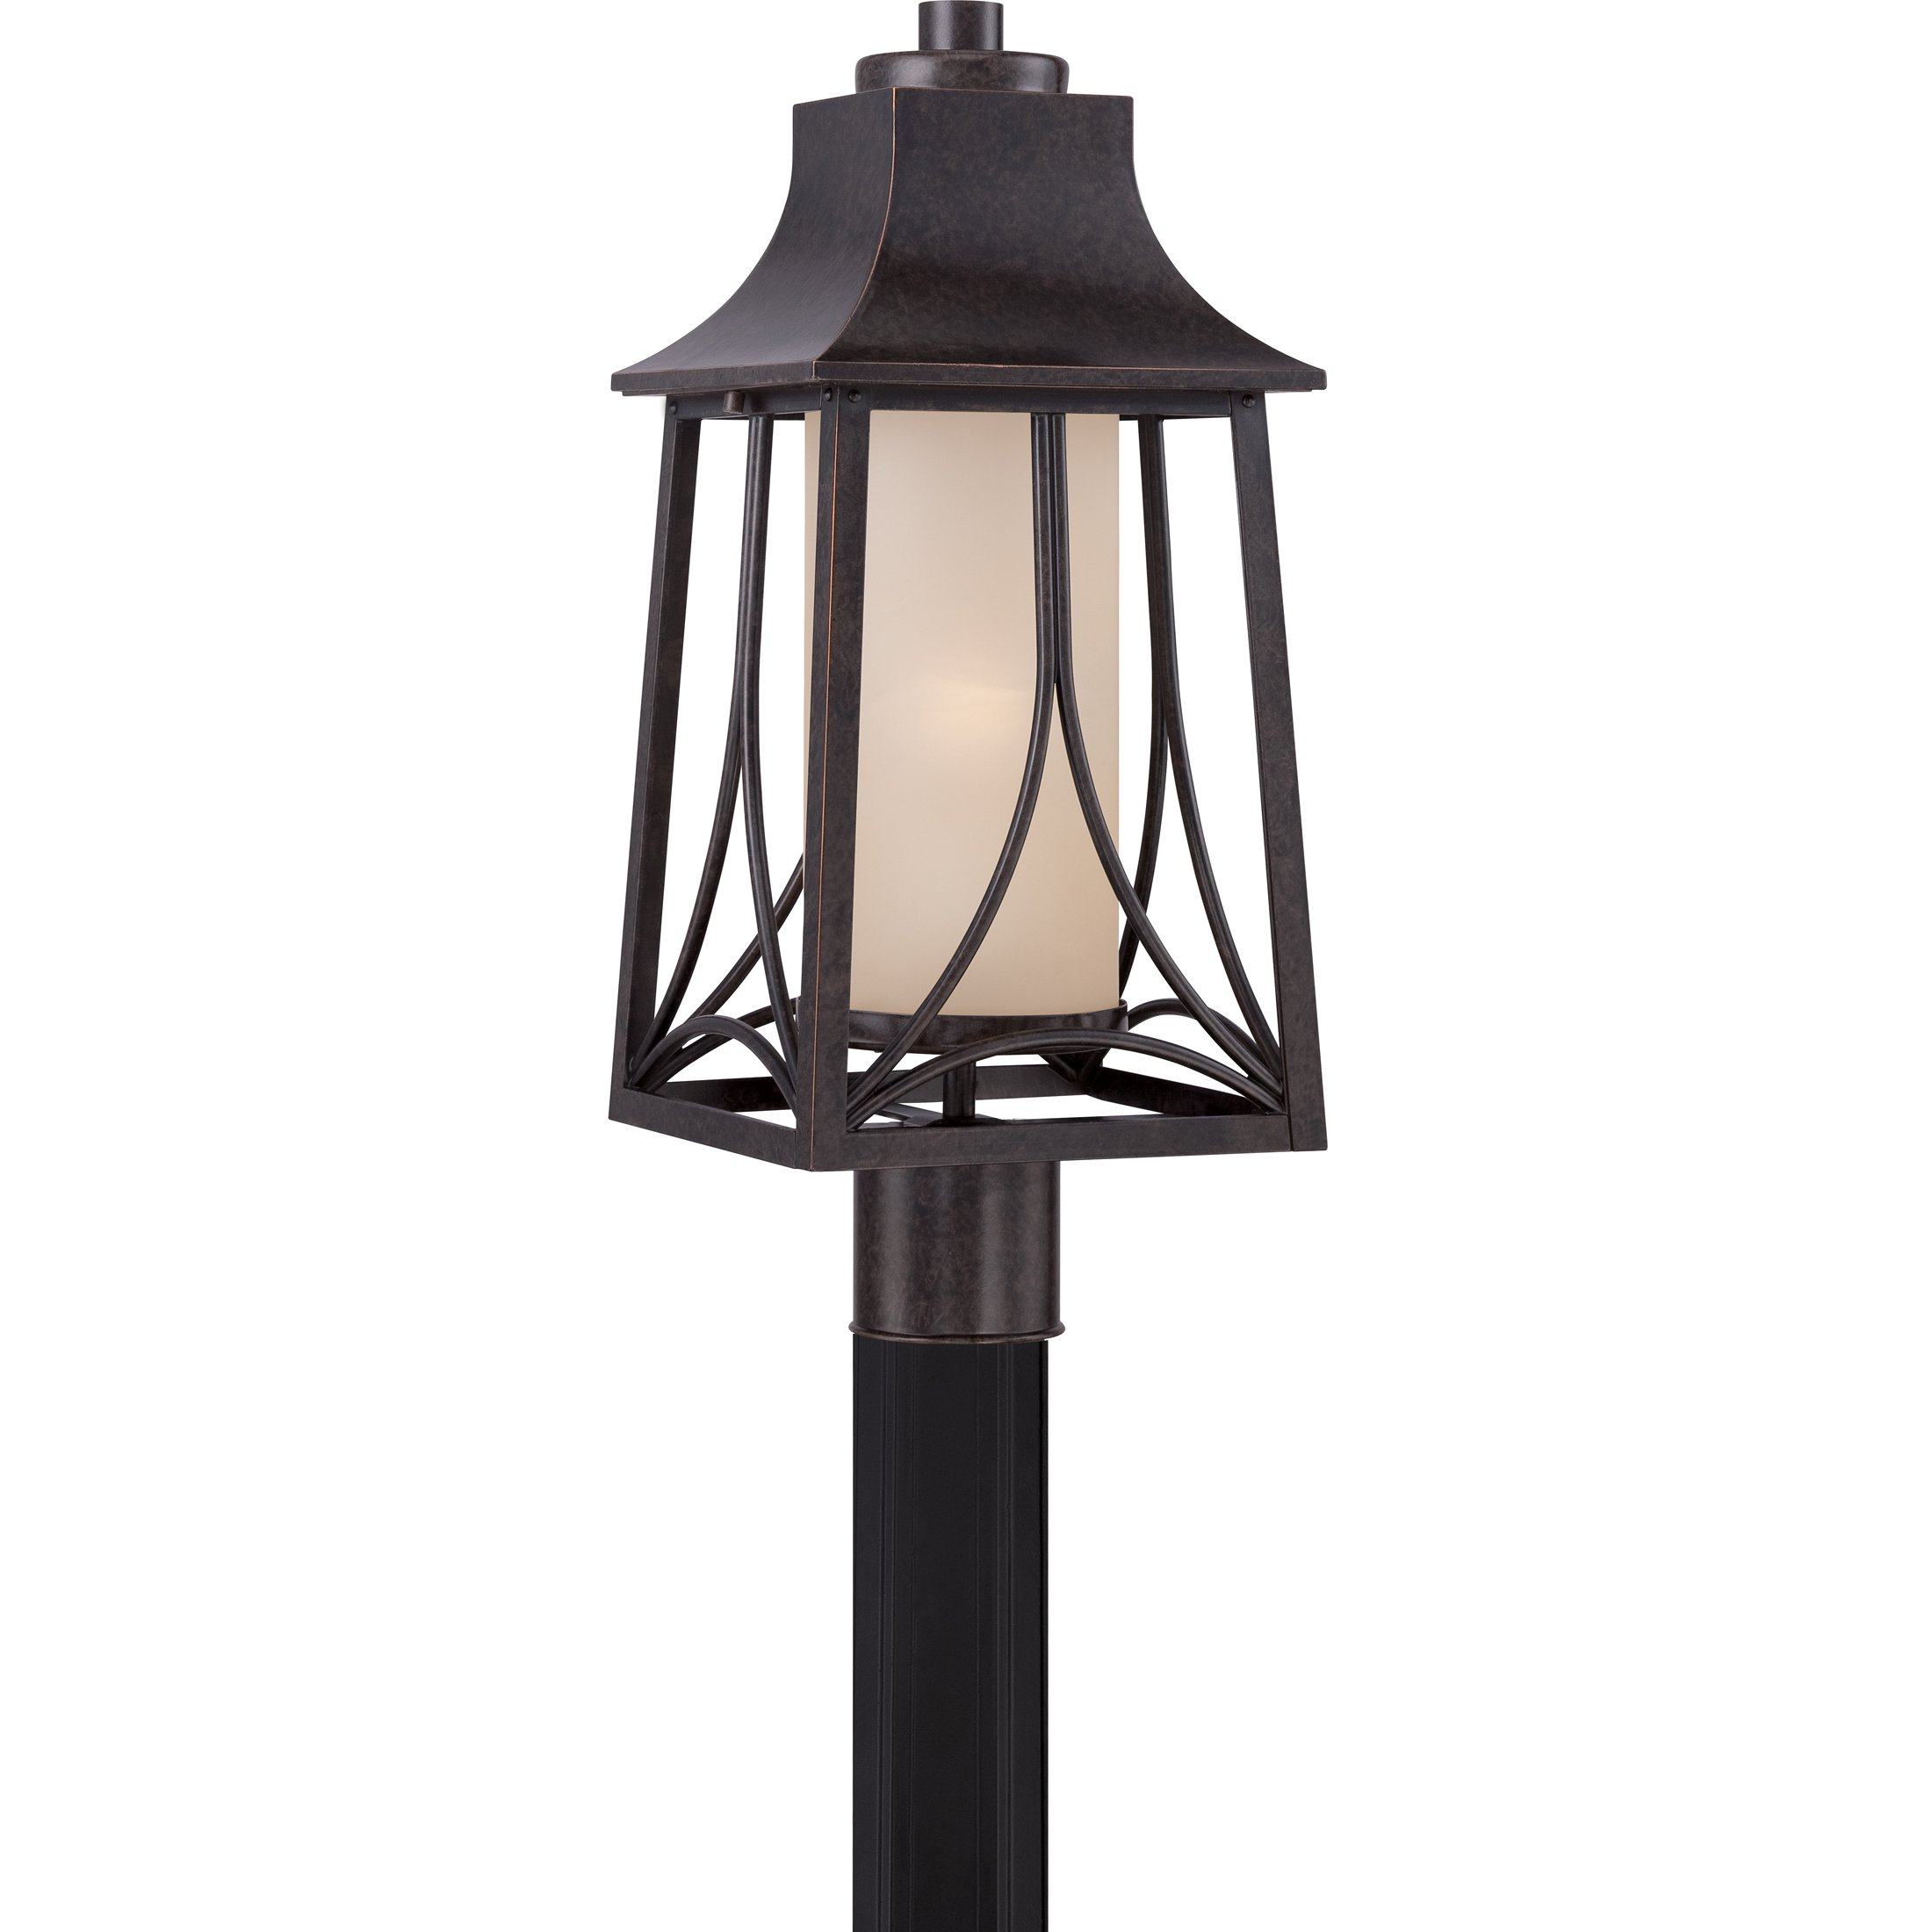 Quoizel HTR9008IB 1-Light Hunter Outdoor Lantern in Imperial Bronze